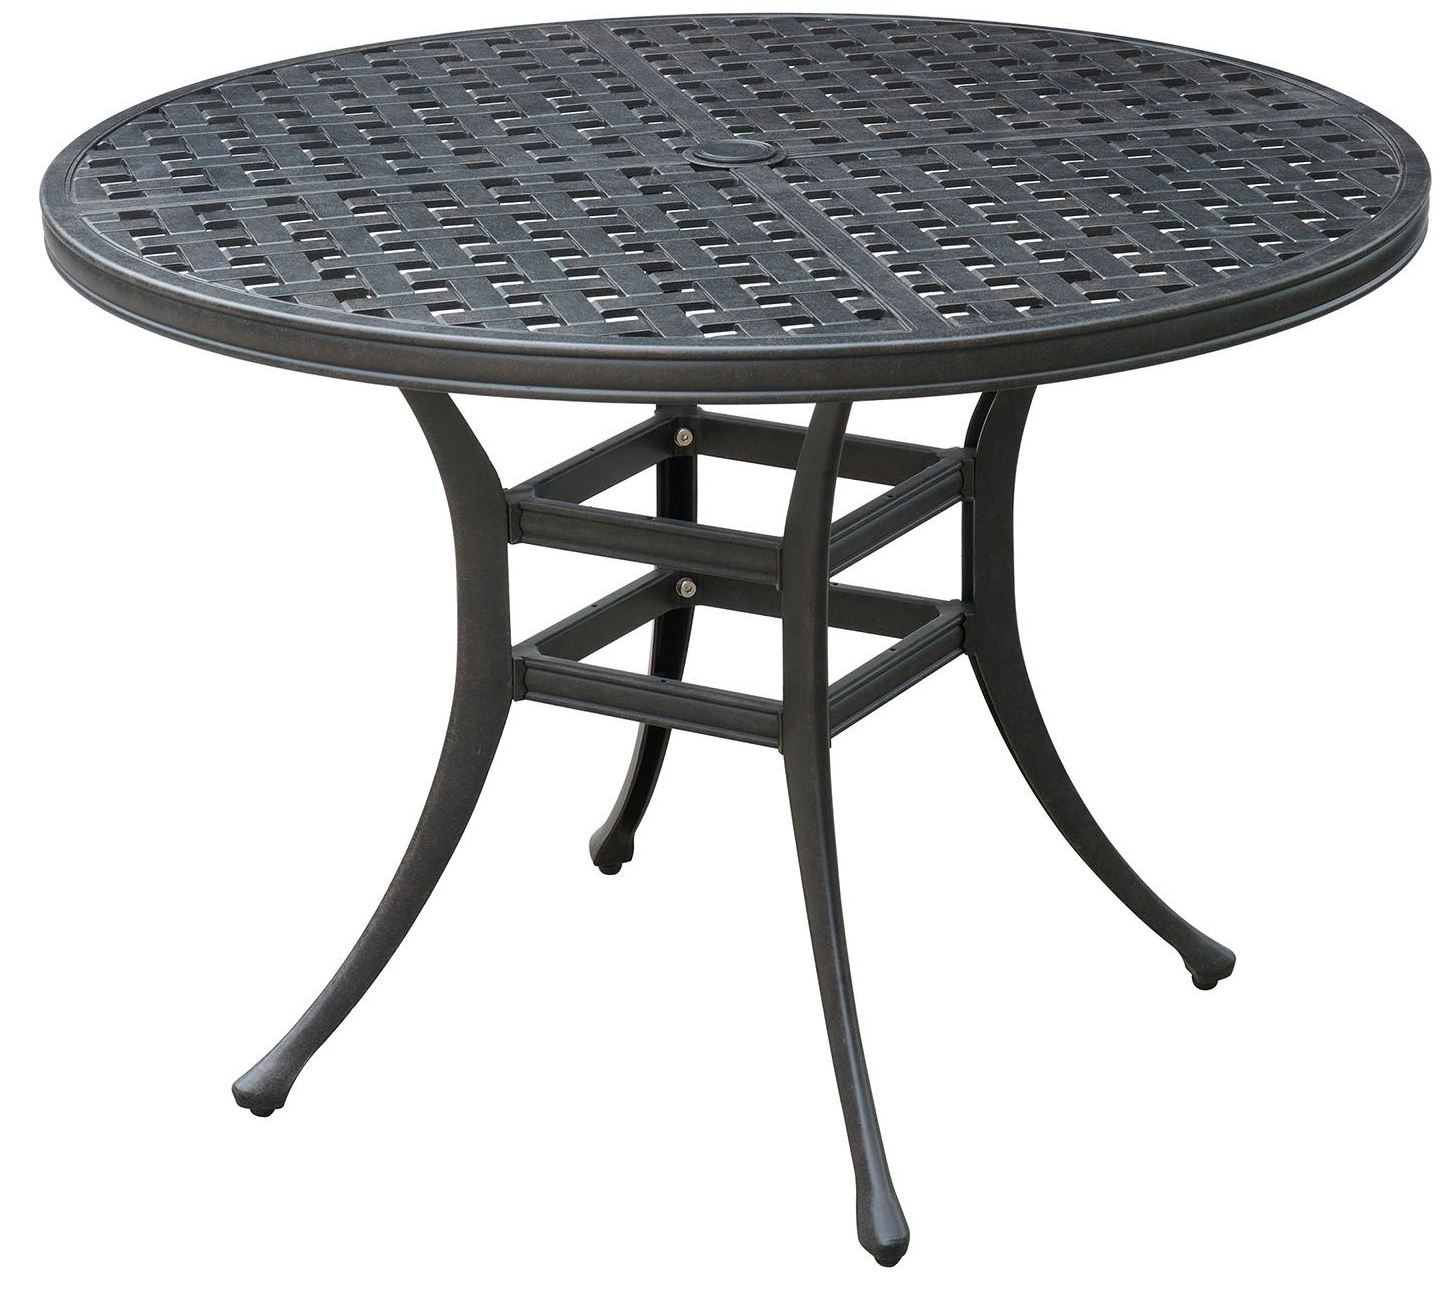 Chiara II Dark Gray Round Patio Dining Table From Furniture Of America Cole